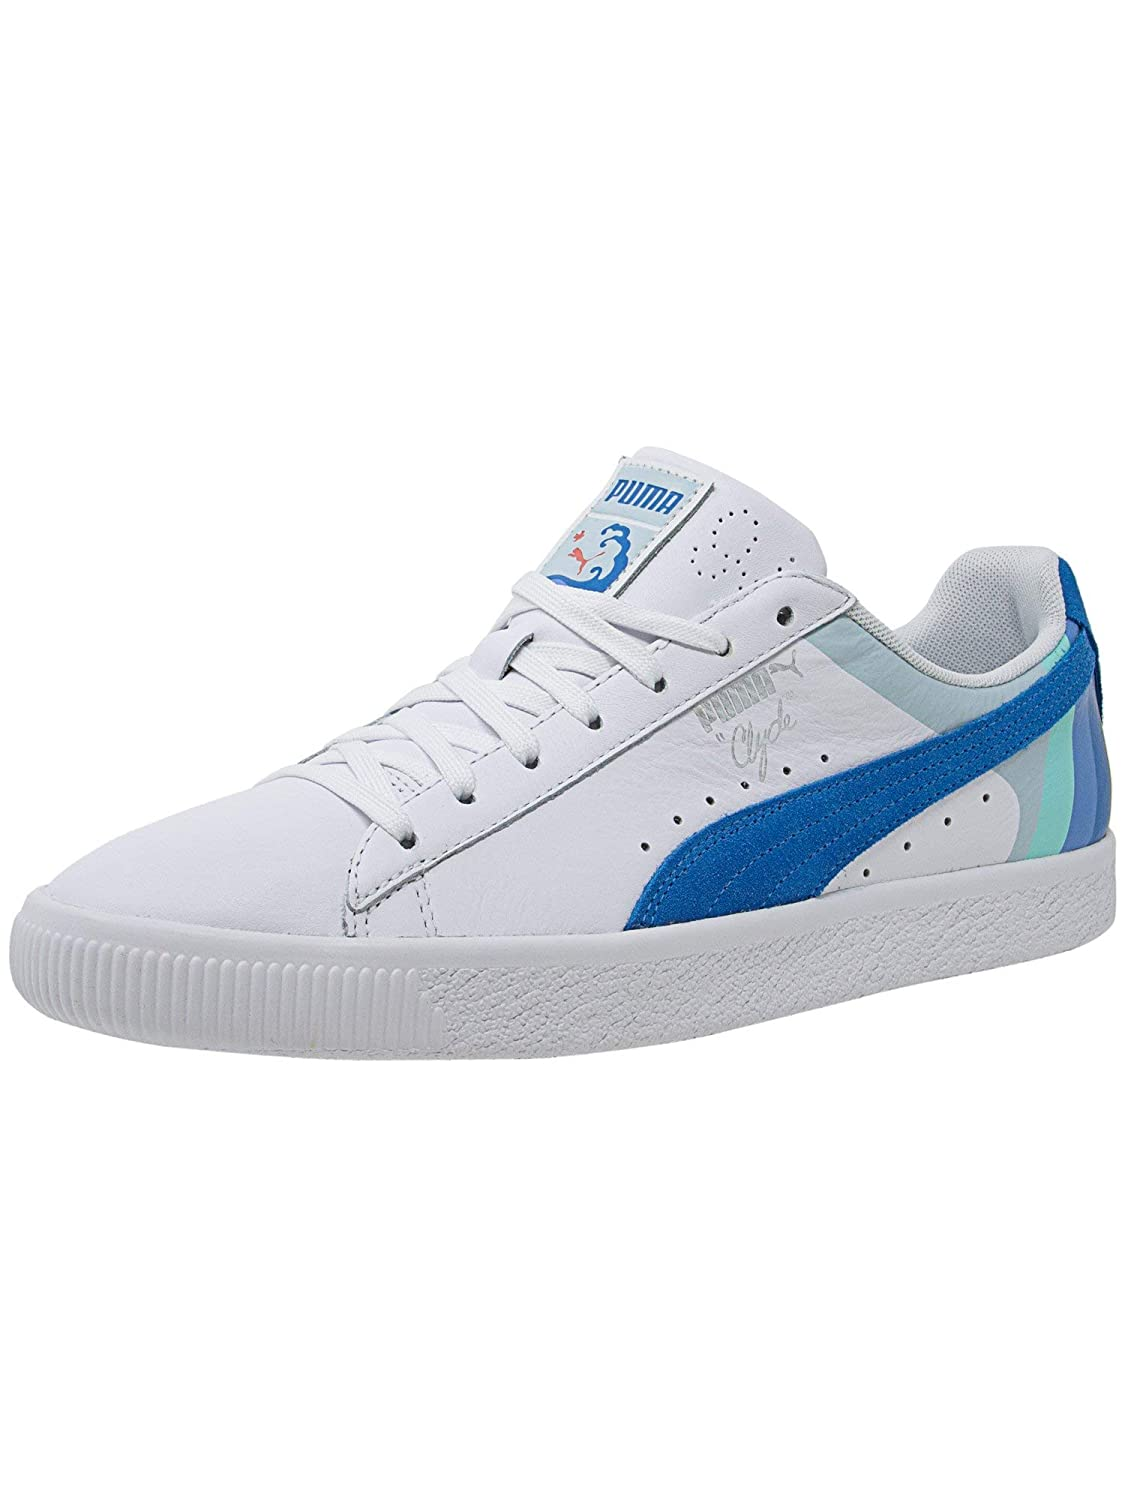 PUMA Mens Clyde - Pink Dolphin Clyde Pink Dolphin